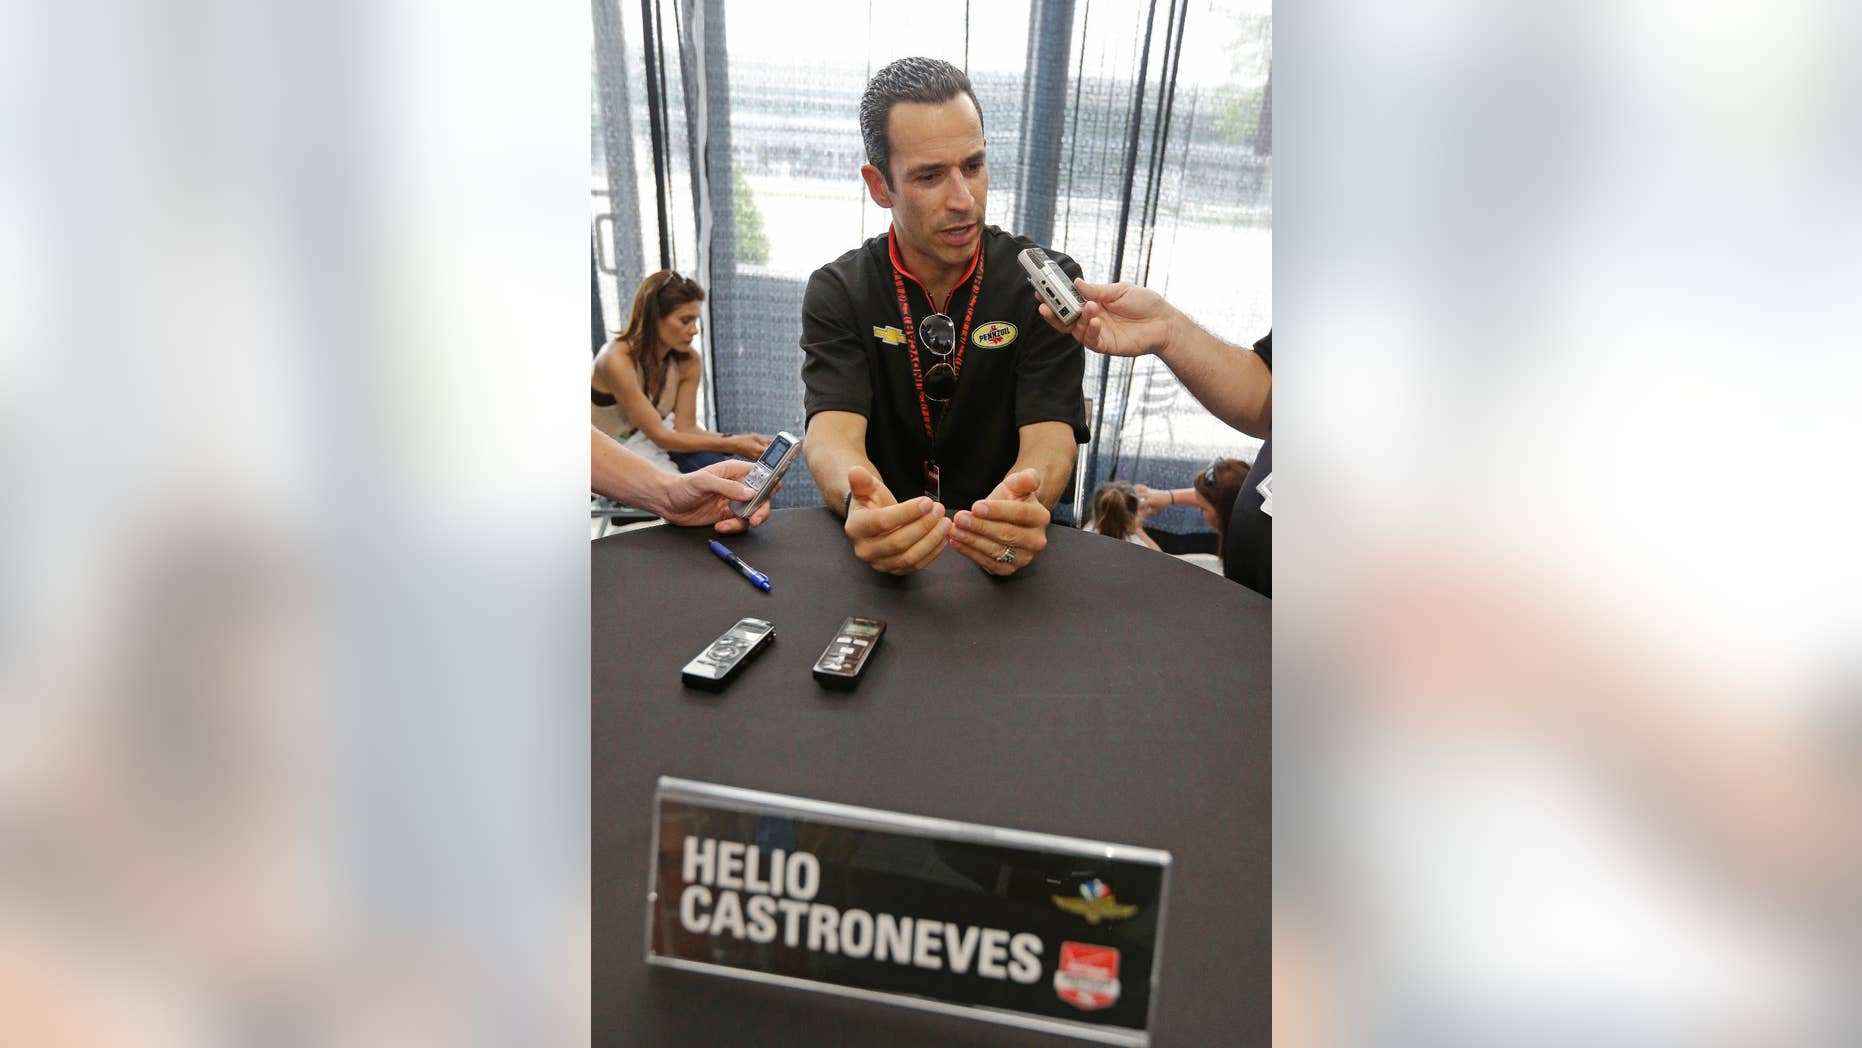 Helio Castroneves, of Brazil, responds to a question during media interview for the Indianapolis 500 IndyCar auto race at the Indianapolis Motor Speedway in Indianapolis, Thursday, May 22, 2014. (AP Photo/Darron Cummings)